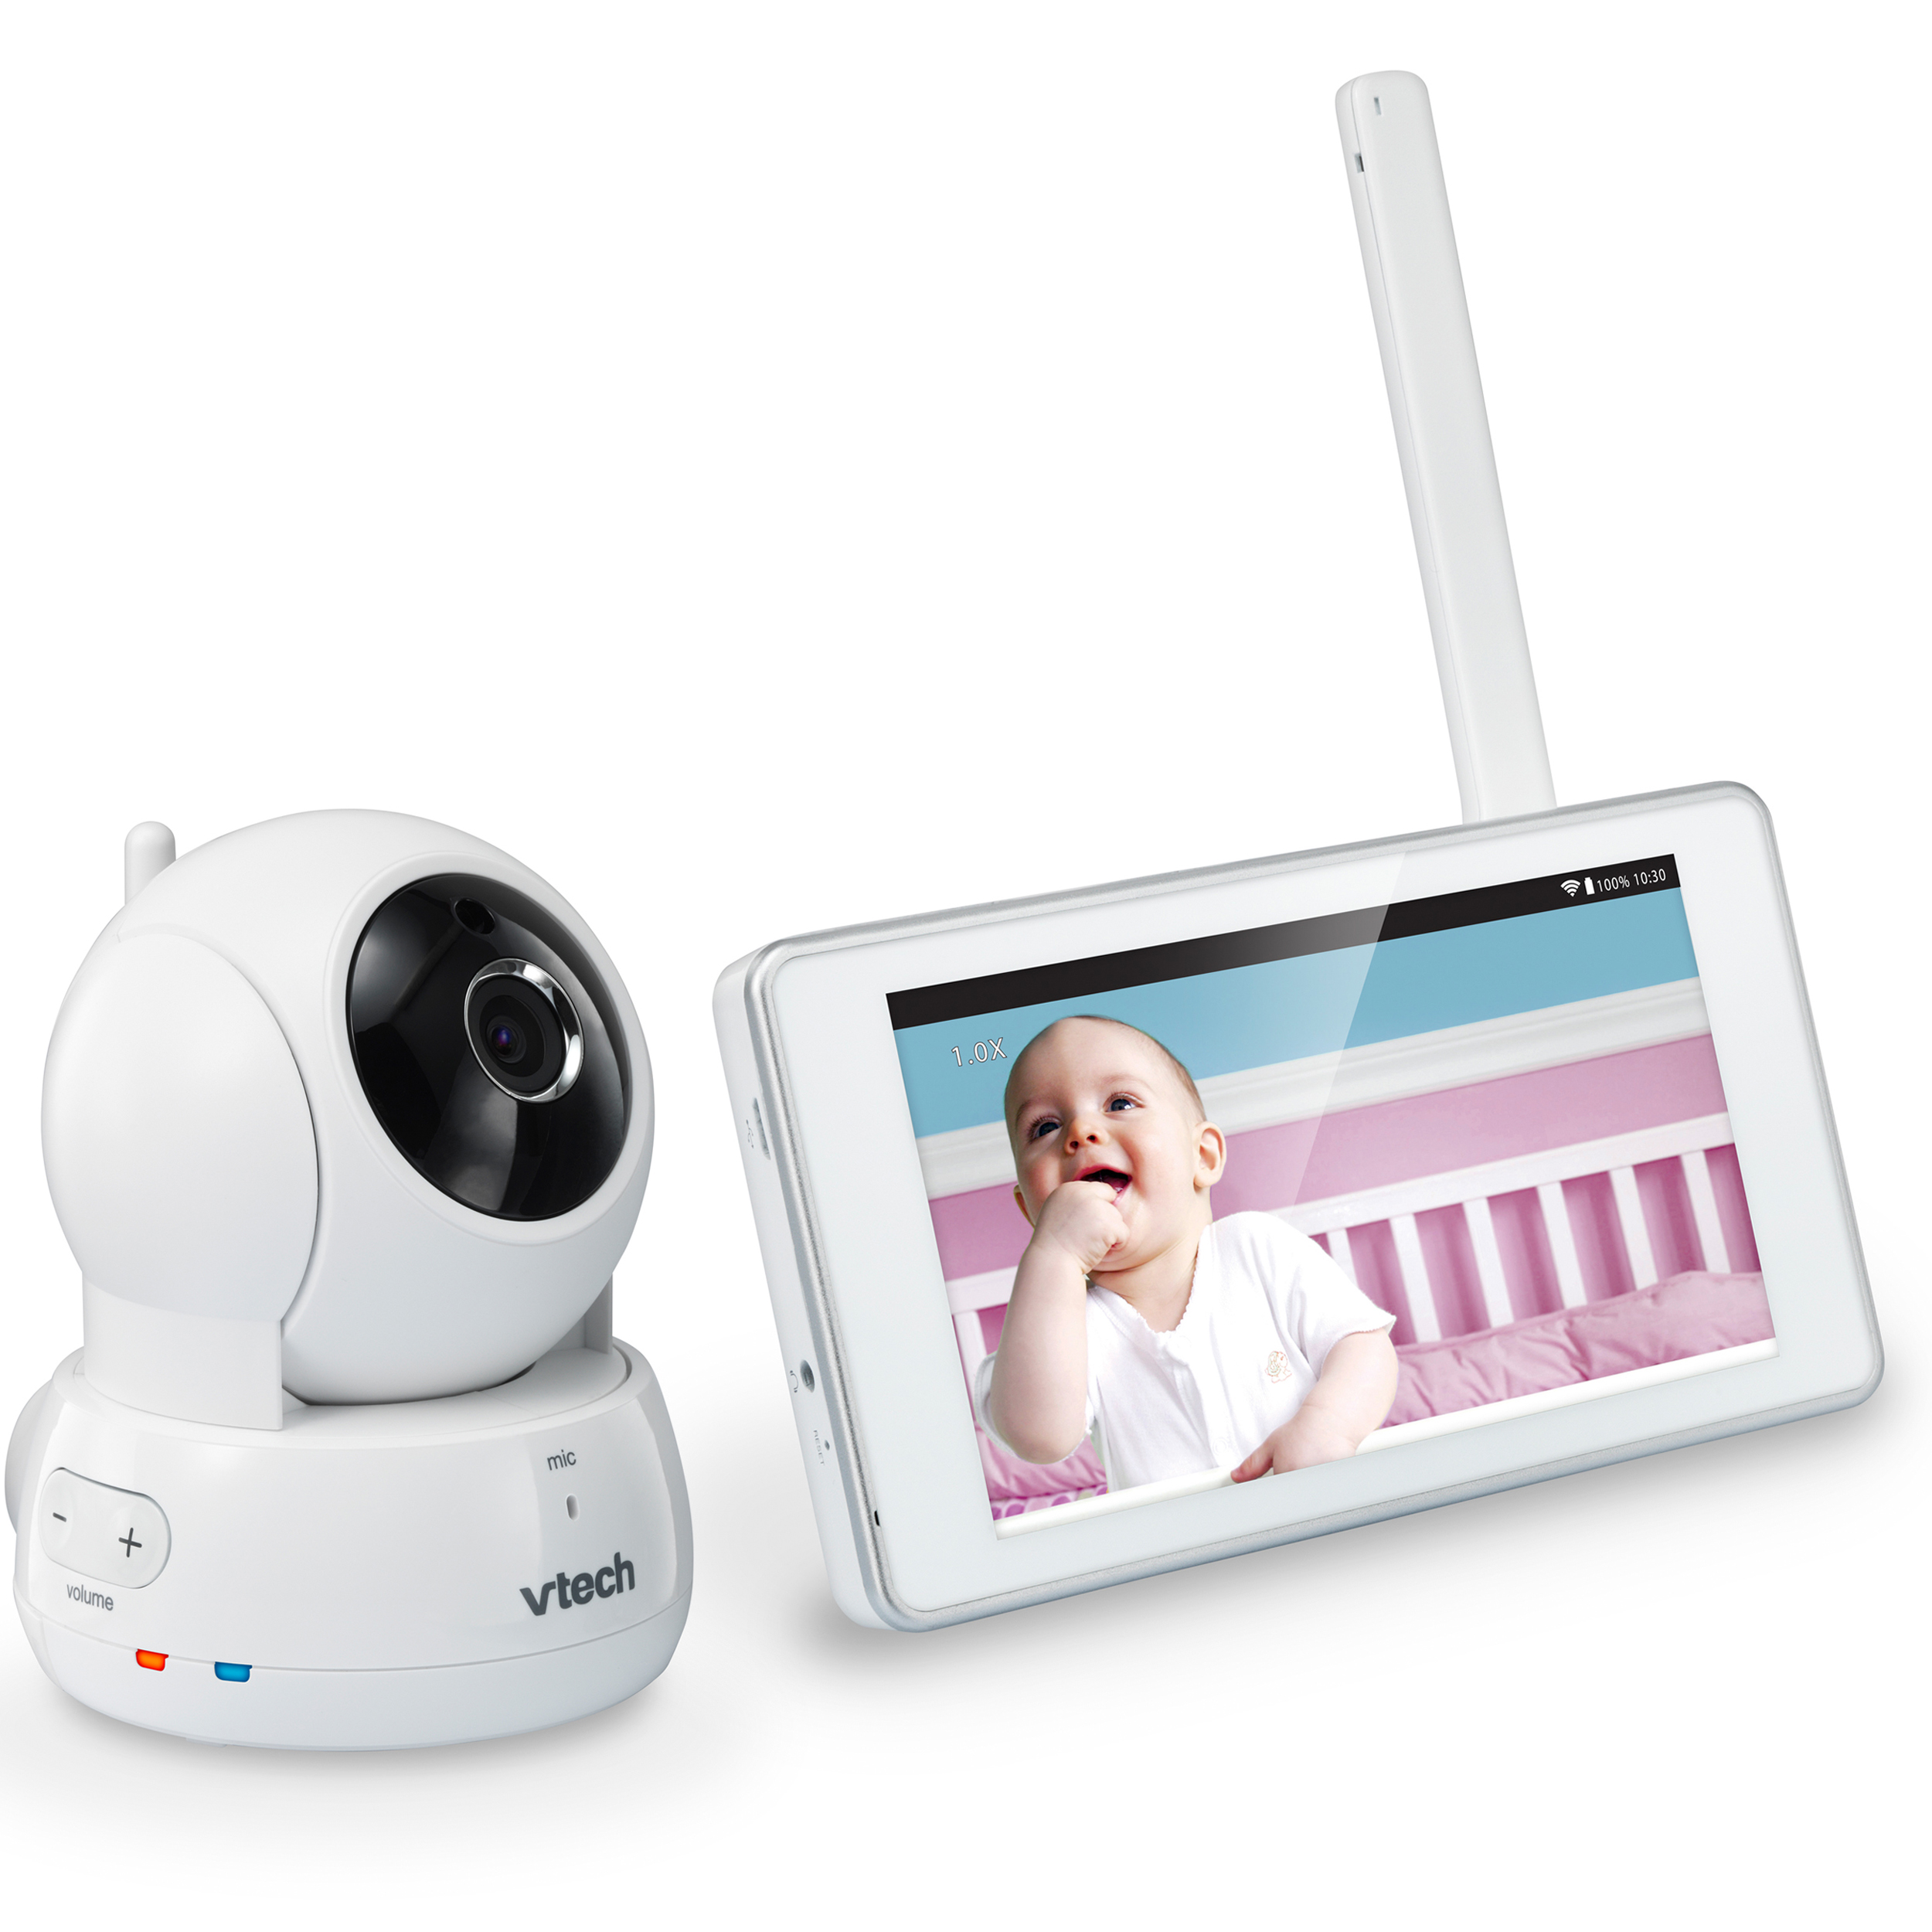 VTech VM991, Wi-Fi Video Baby Monitor, Remote Access, Pan & Tilt Camera by VTech